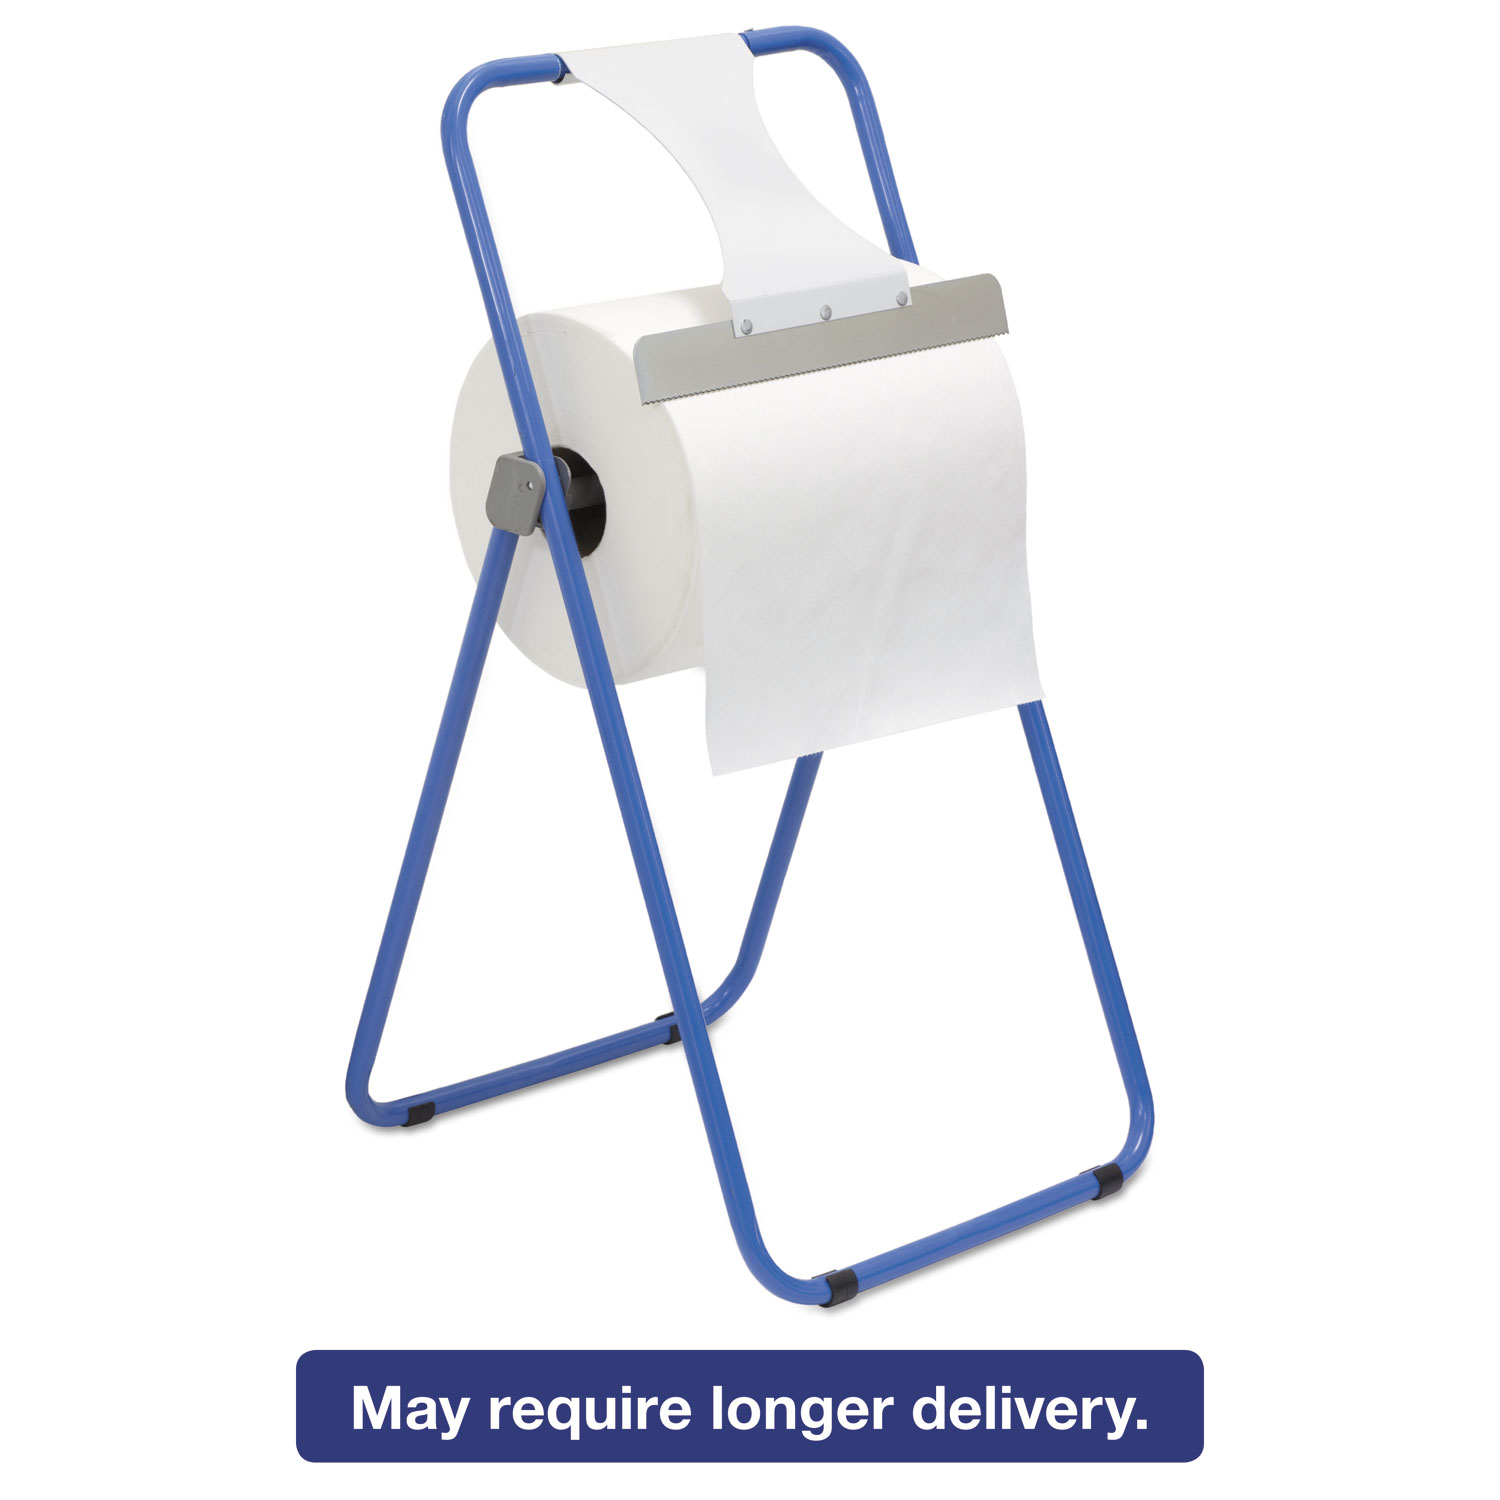 OFFICE SUPPLIES | WASHROOM FIXTURES & SUPPLIES | DISPENSERS WIPER ...